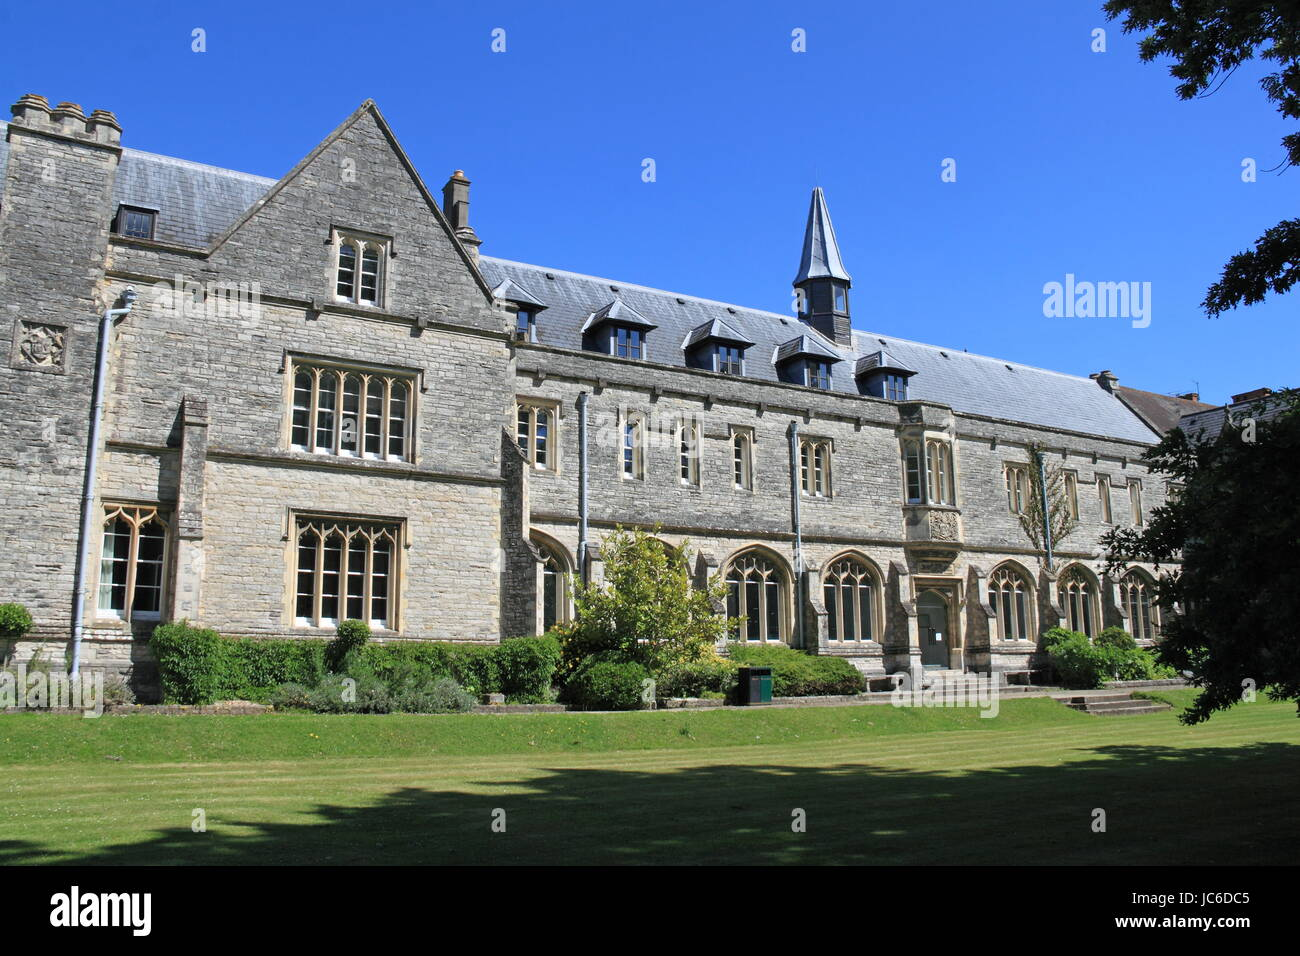 University House, Bishop Otter Campus, University of Chichester, Chichester, West Sussex, England, Great Britain, - Stock Image